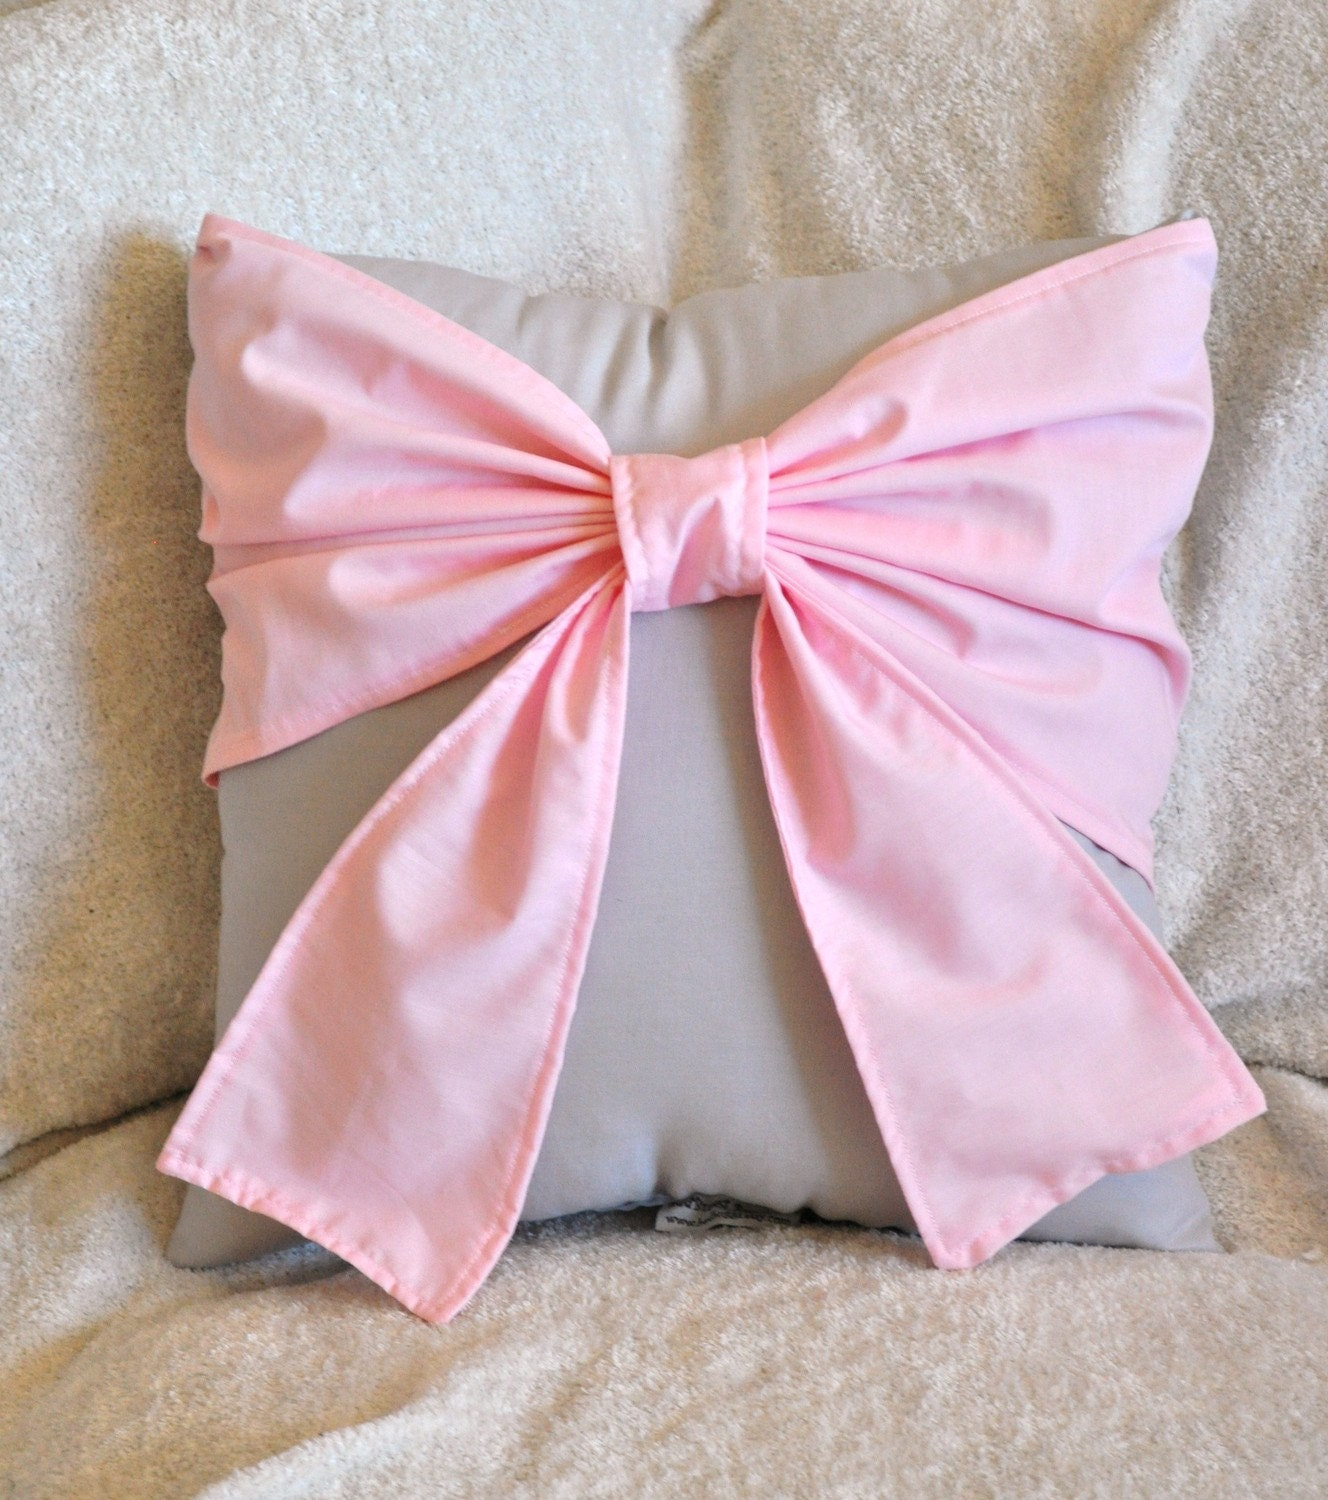 Throw Pillow Decorative Pillow Light Pink Big Bow By Bedbuggs. Super Bowl Party Decorations. Wrought Iron Panels Decorative. Dressing Room Furniture. Upholstery Fabric For Dining Room Chairs. Mid Century Dining Room Chairs. Pottery Barn Dining Room Chairs. Glass Living Room Table Sets. Decorative Bowl